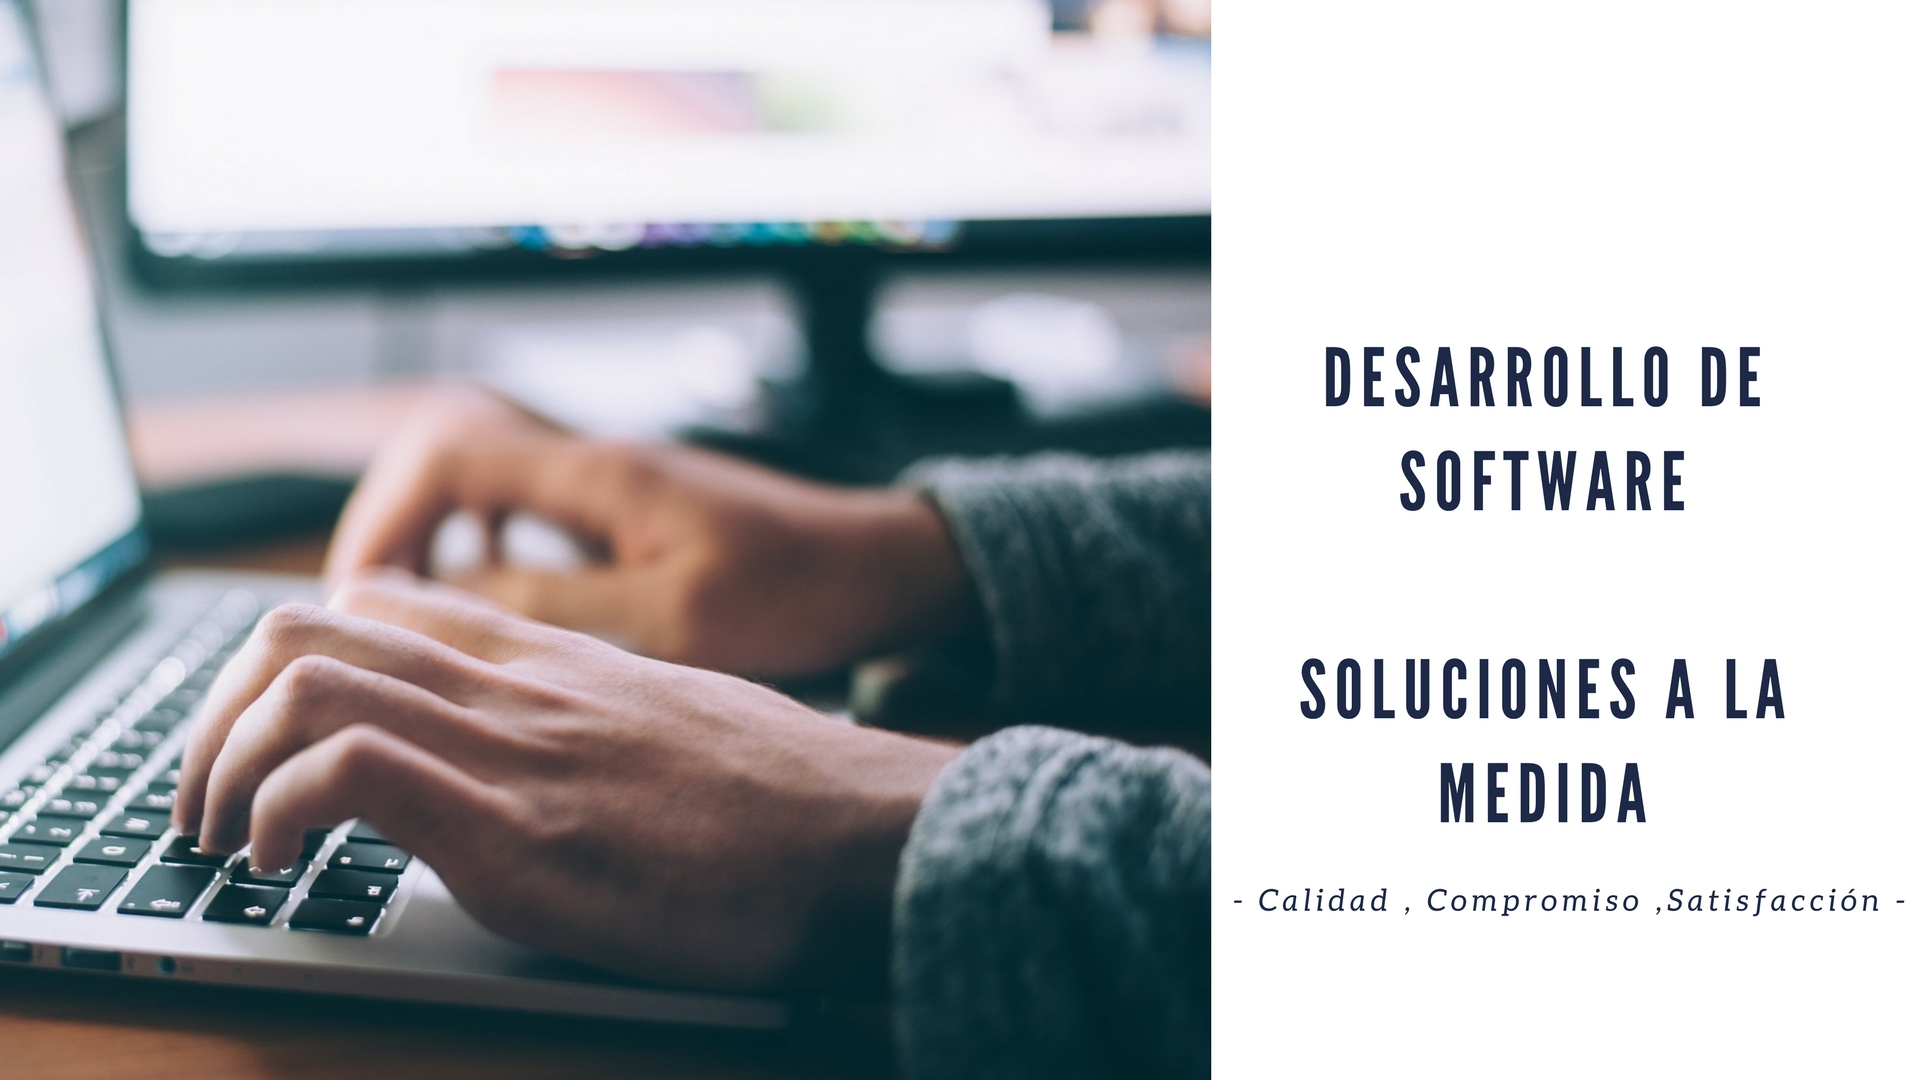 Desarrollo de SoftwareSoluciones a la medida